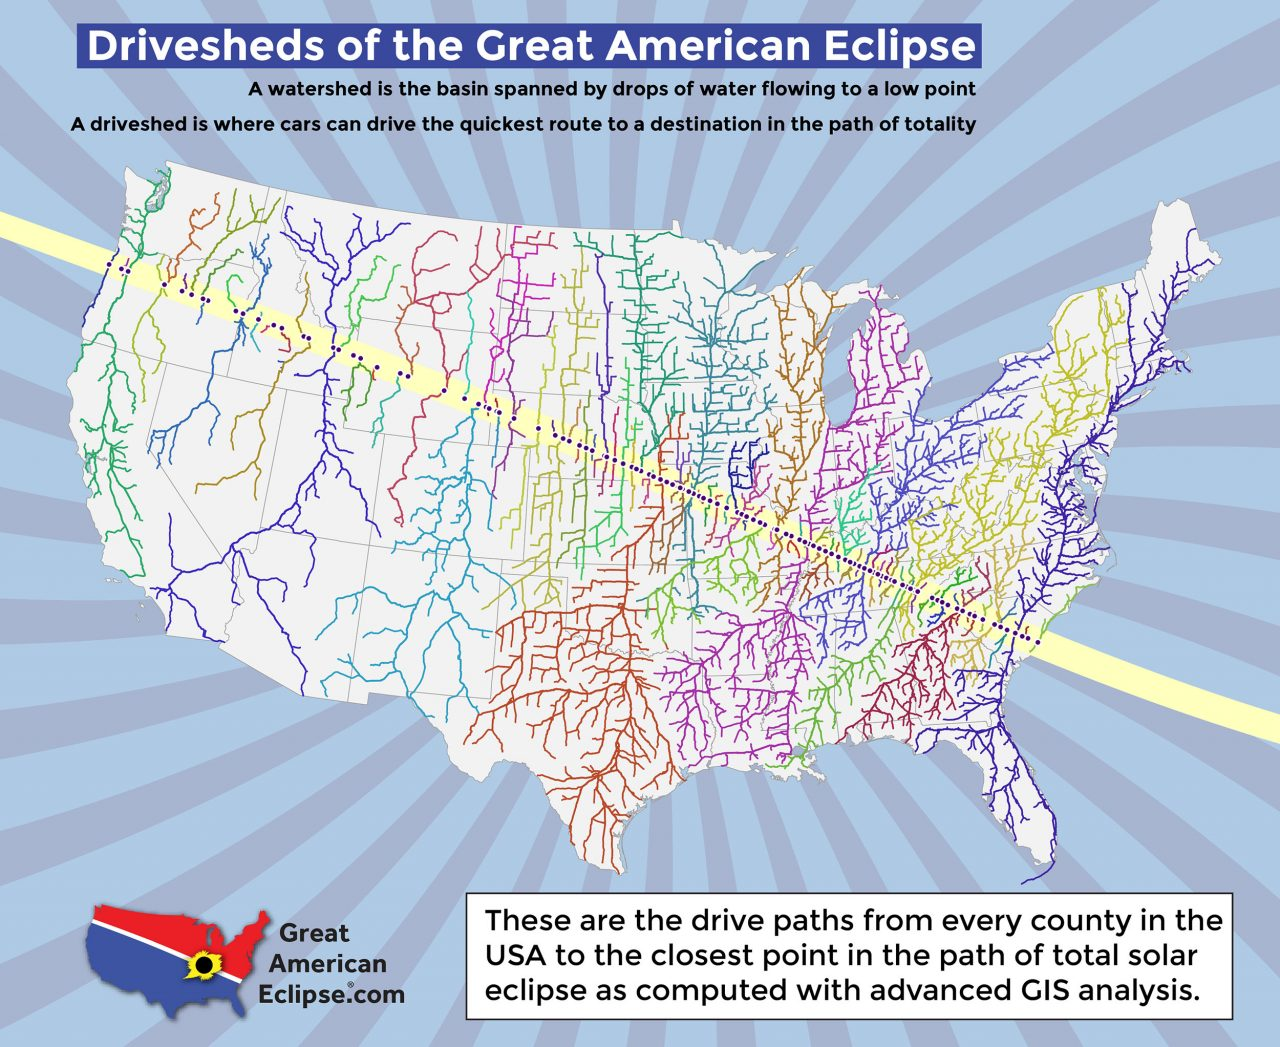 Go To Greatamericaneclipse Com And Look Down The Page For This Ilration To Use The Navigation Buttons On The Left And Right Sides Of The Gallery